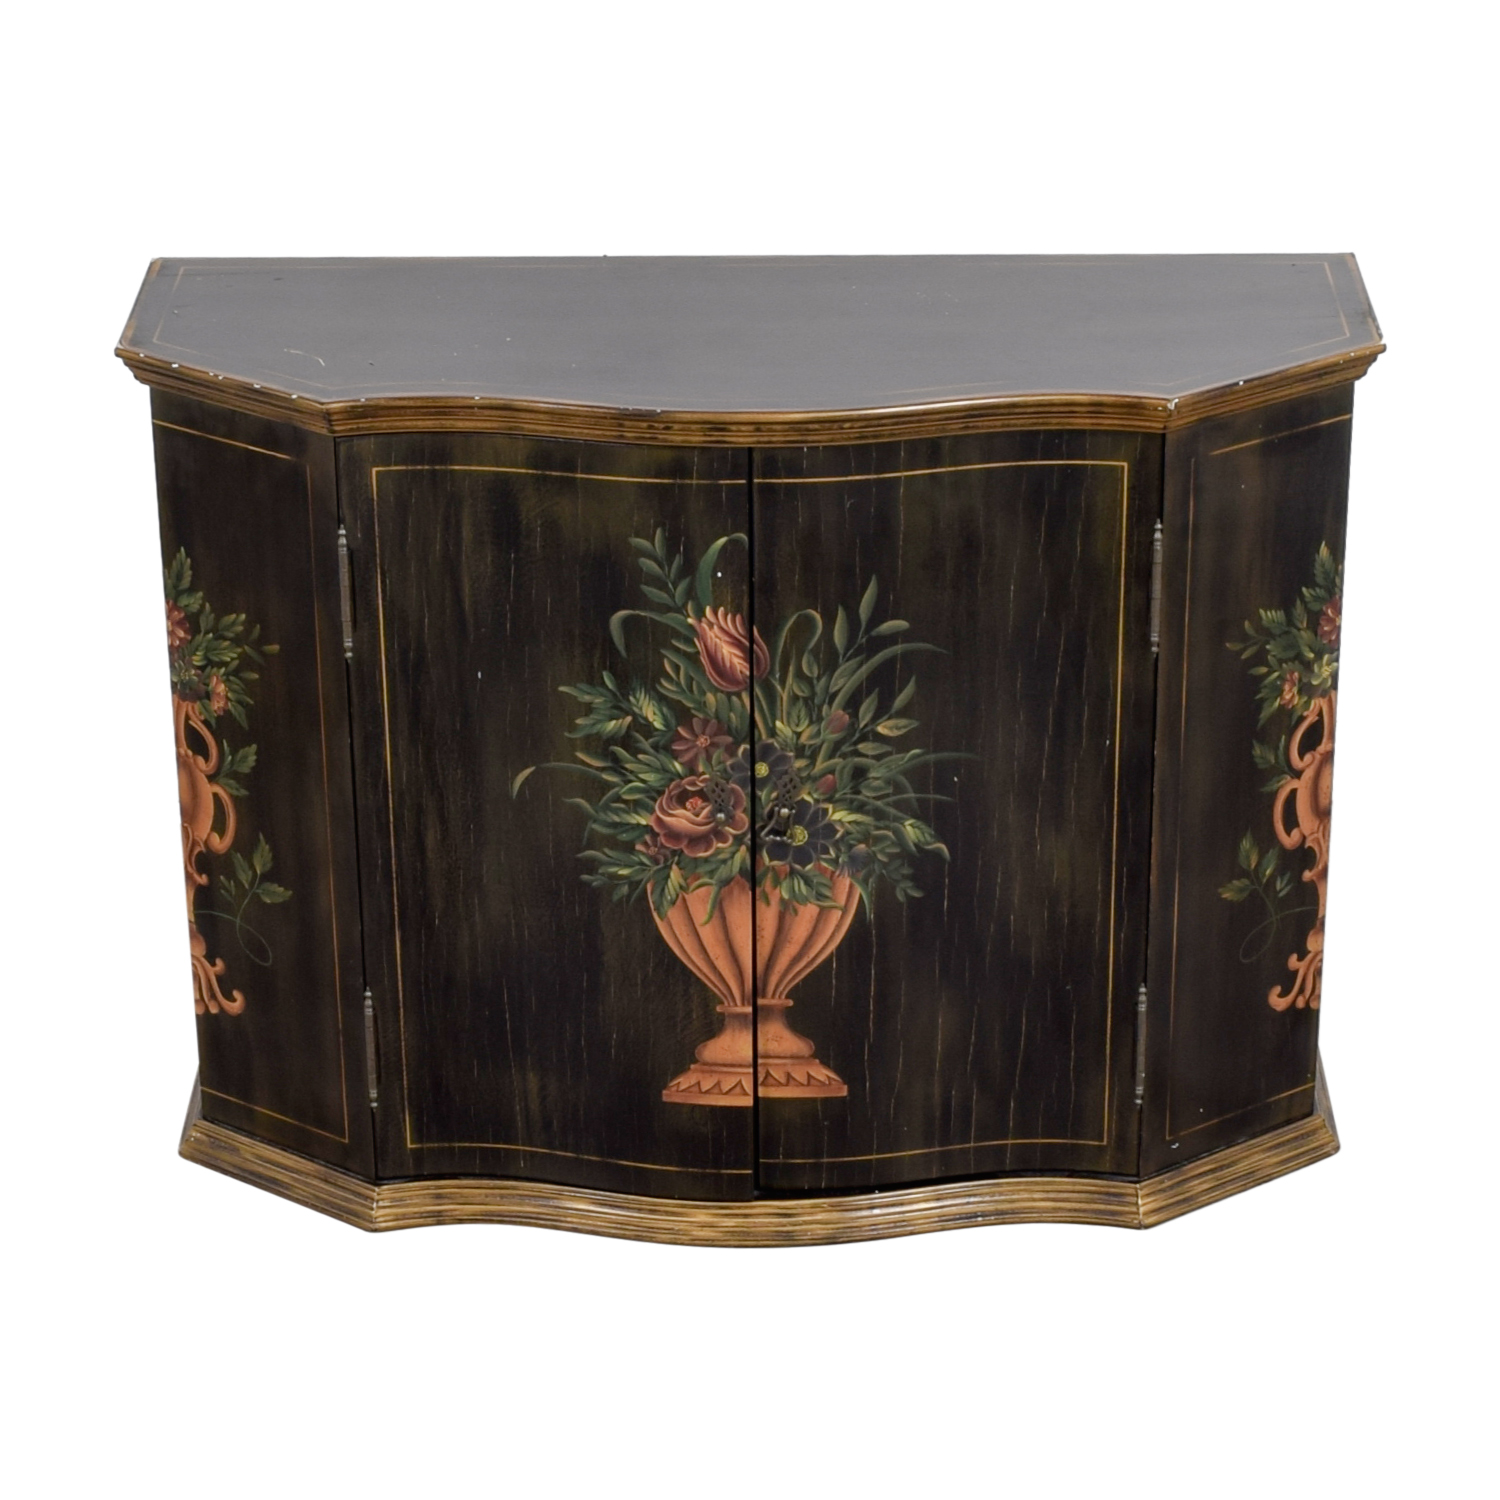 Ethan Allen Ethan Allen Floral Hand Painted Cabinet second hand